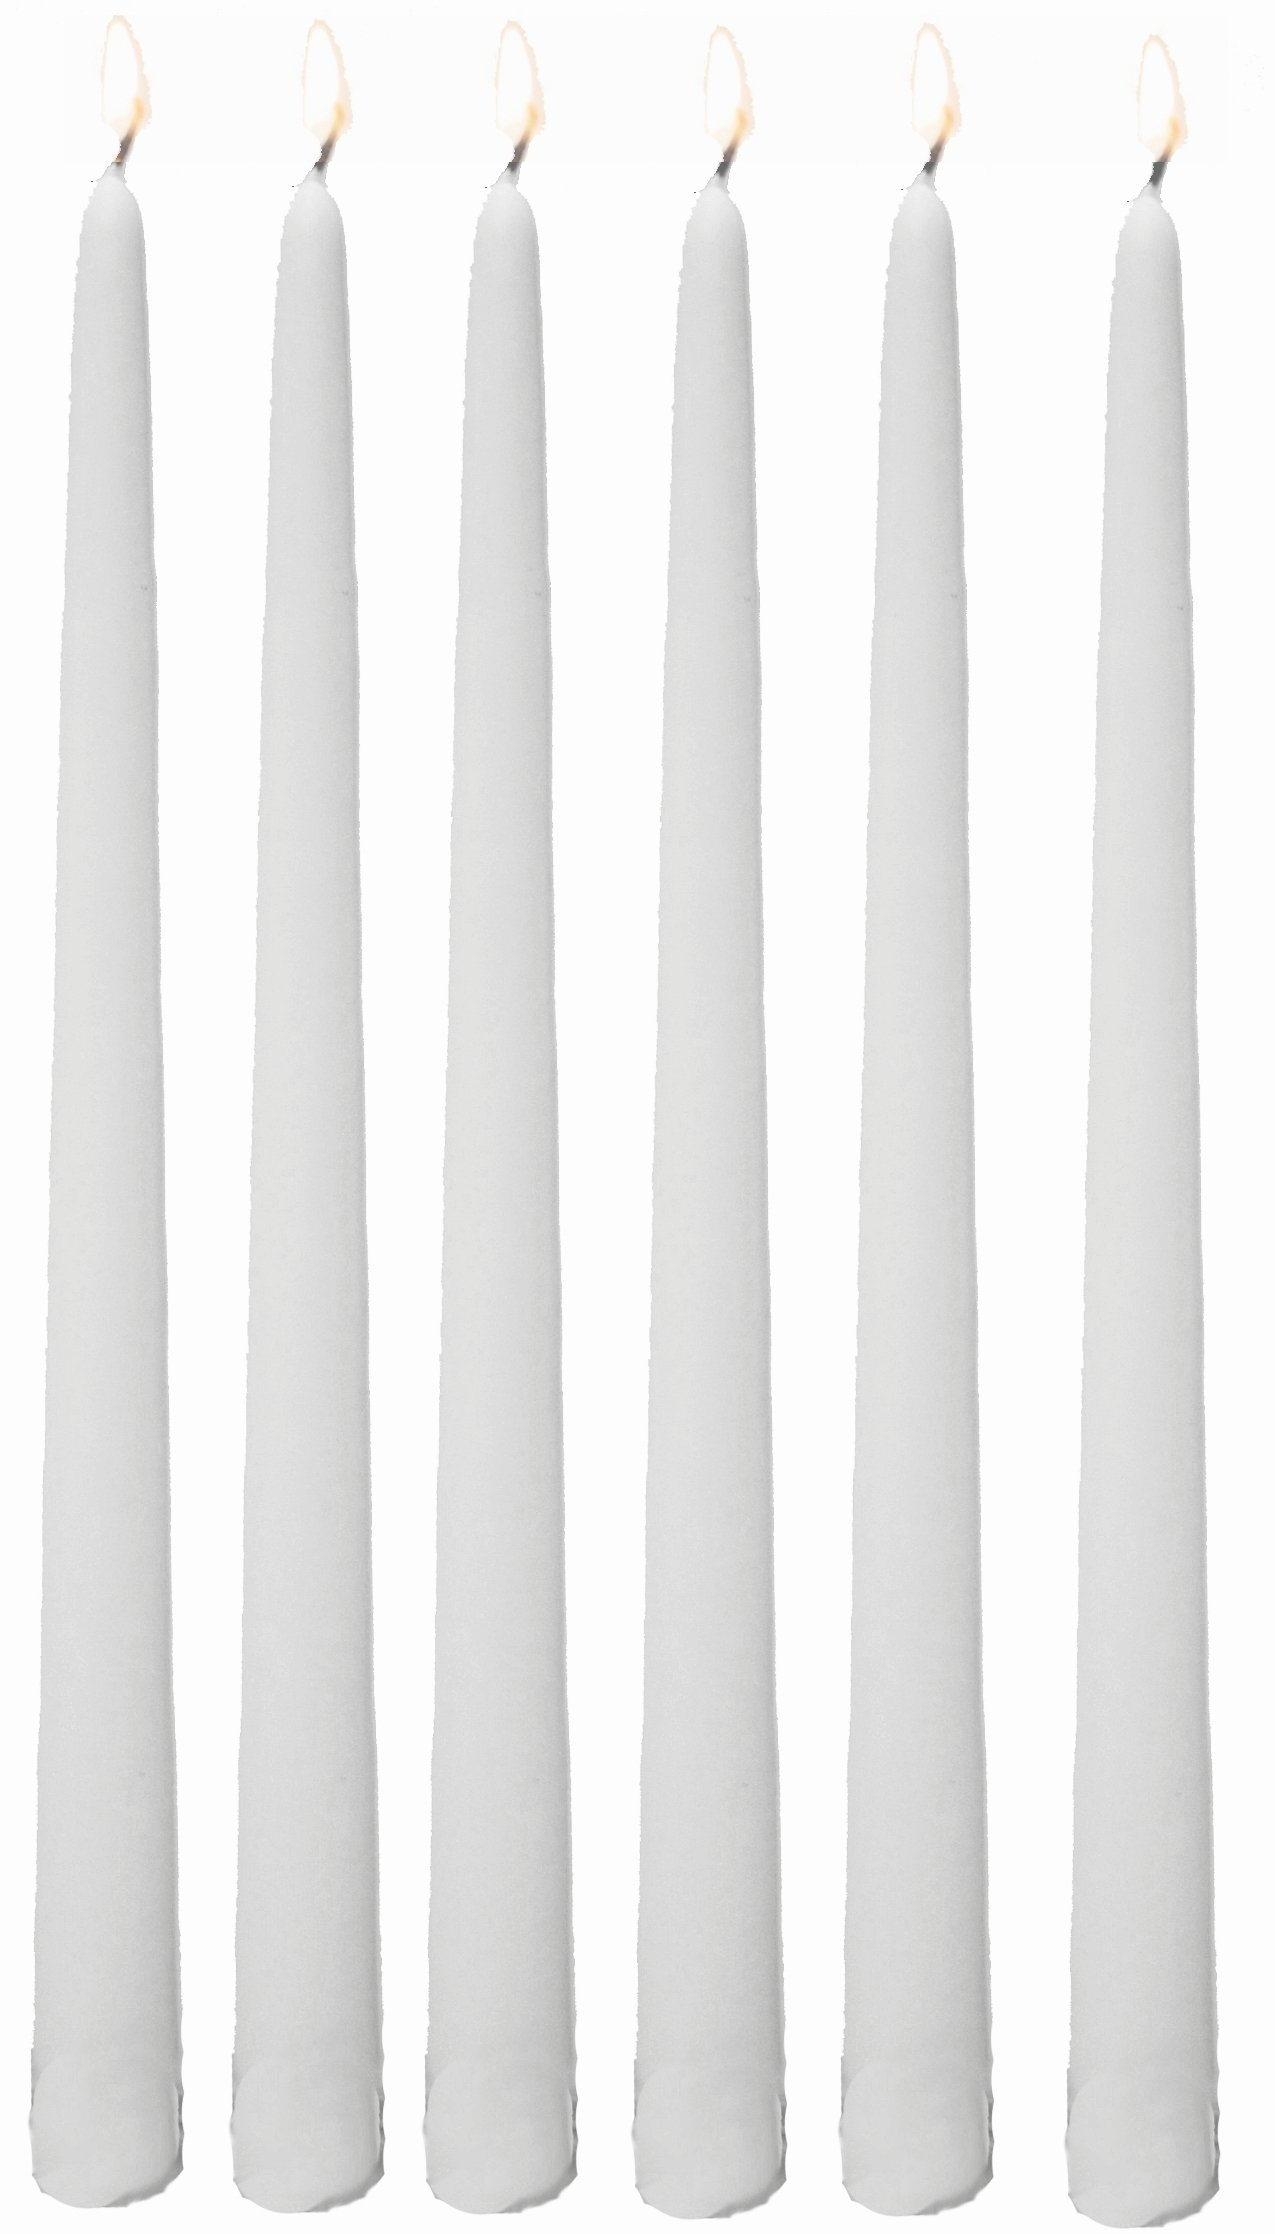 Bulk Taper Candles - Qty 144 (12 Inch, White) by D'light Online